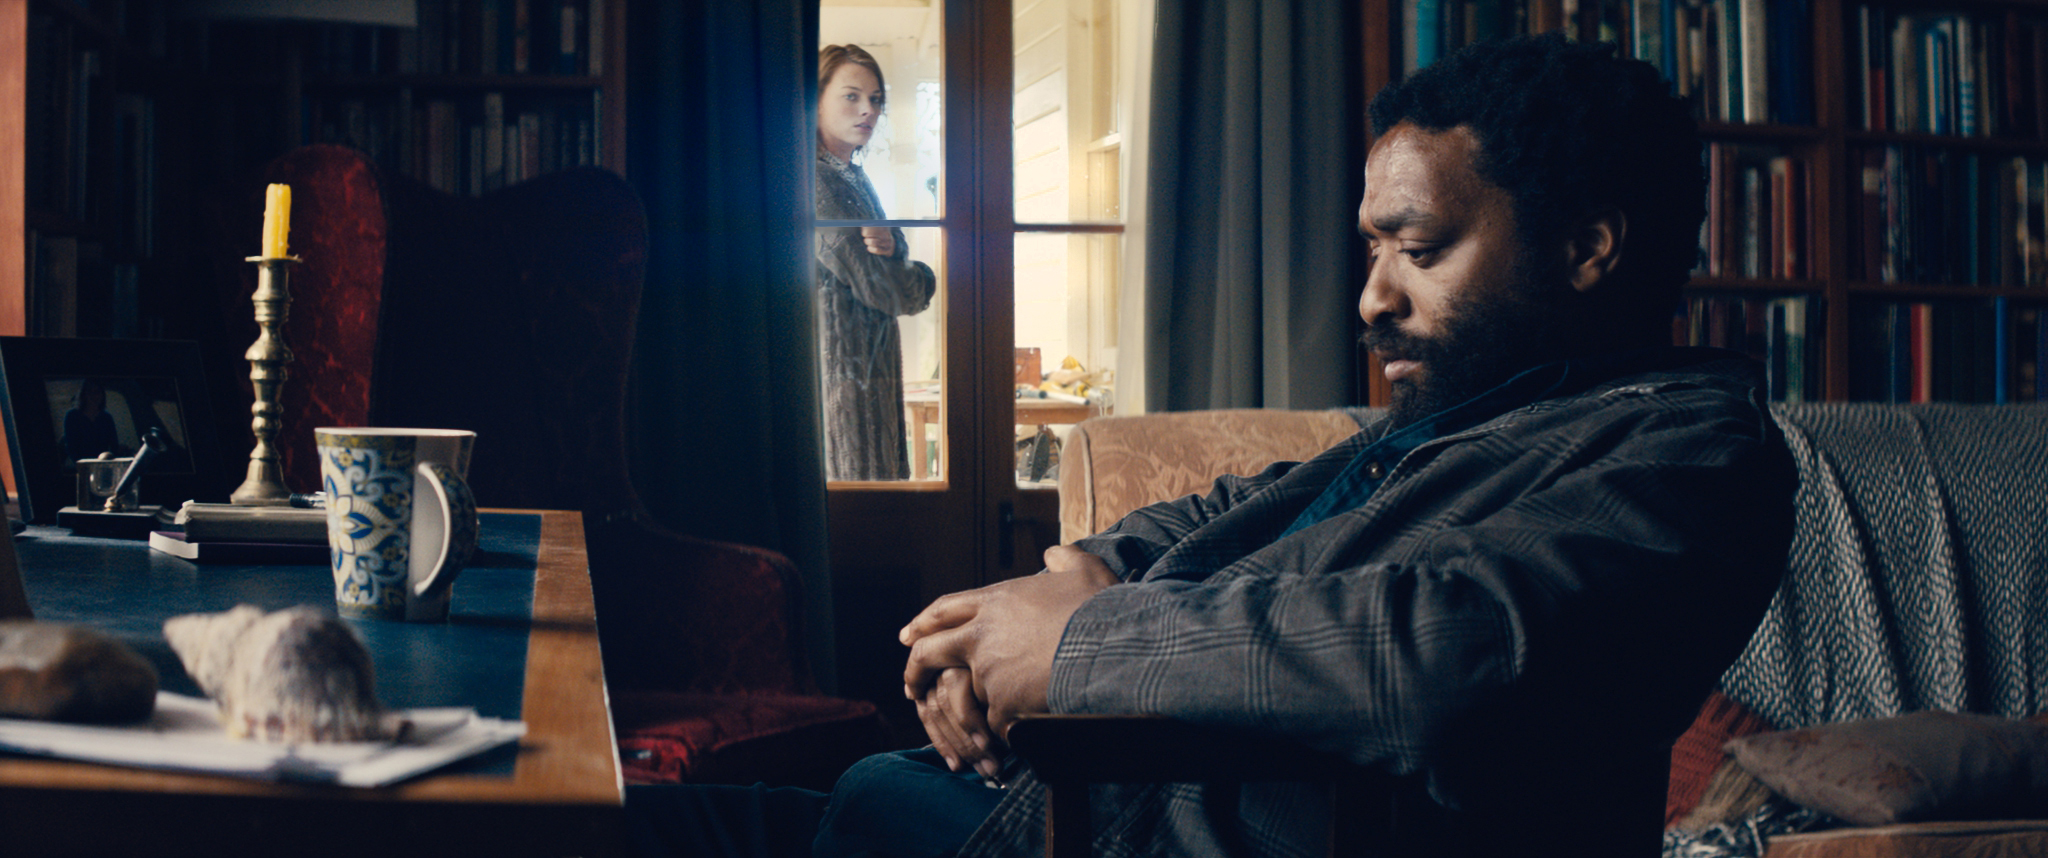 Margot Robbie and Chiwetel Ejiofor in Z for Zachariah